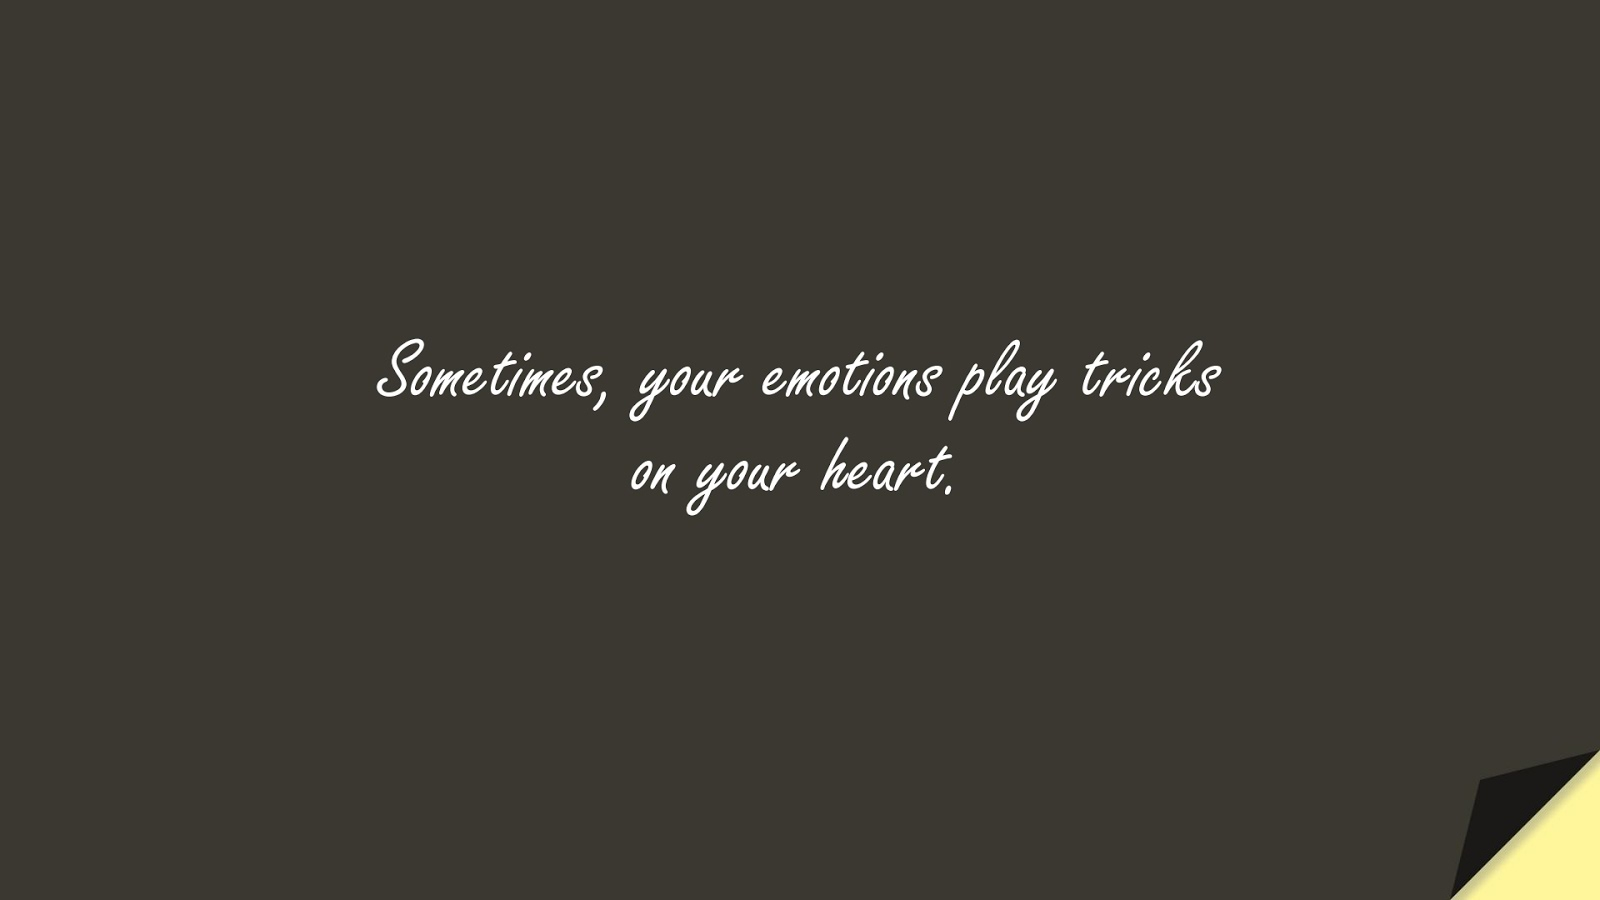 Sometimes, your emotions play tricks on your heart.FALSE